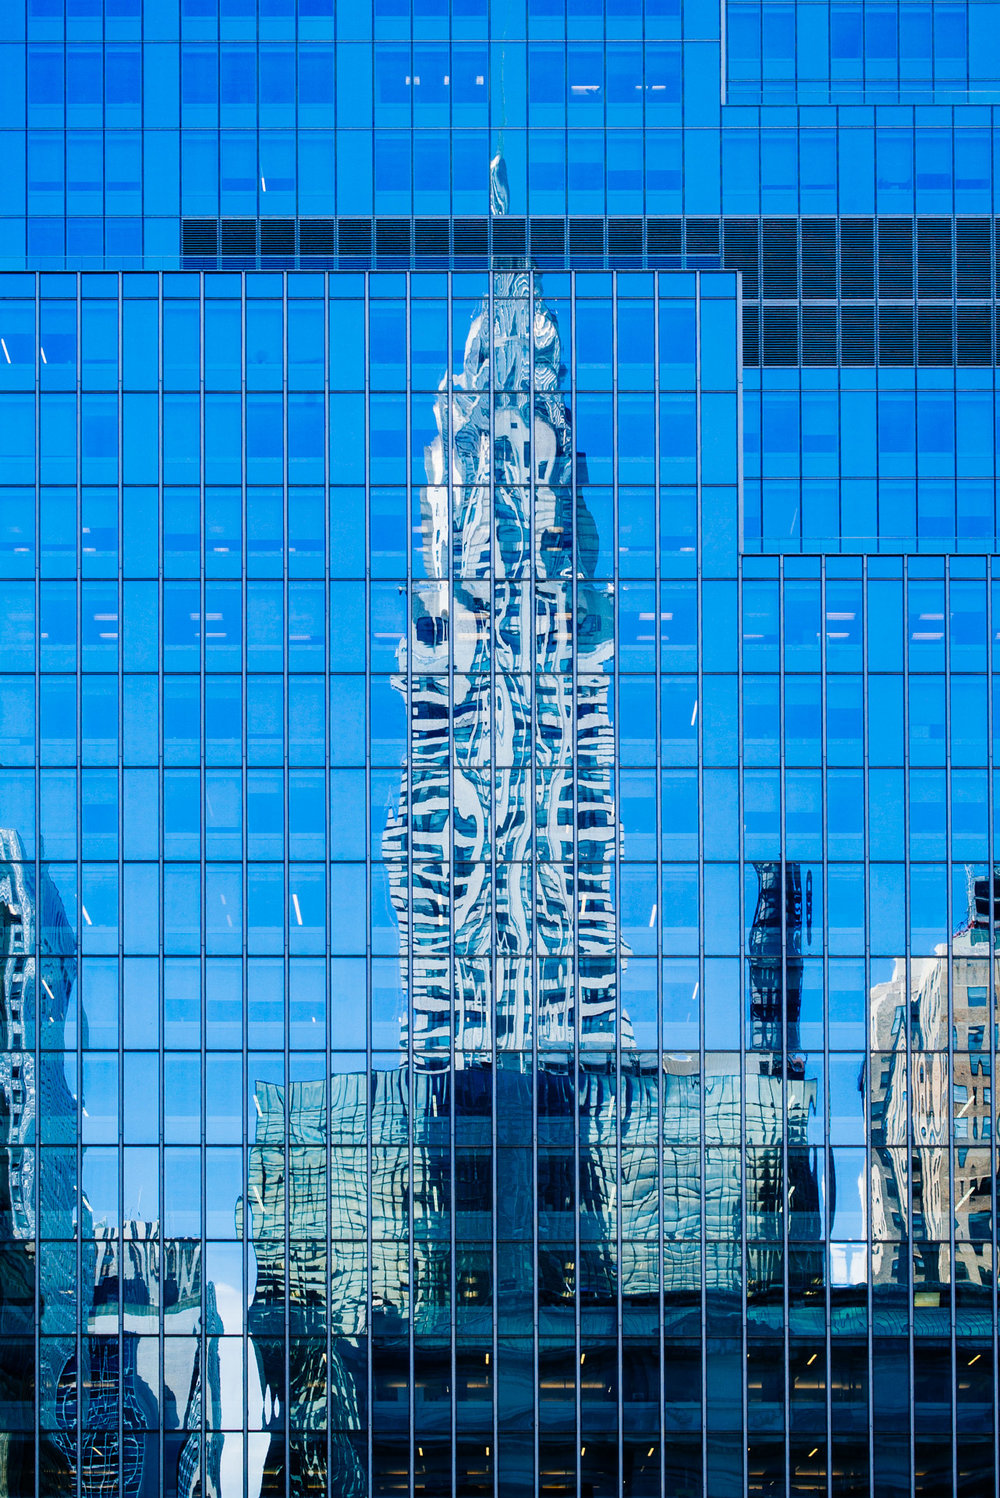 Chrysler Building reflection, Midtown, Manhattan